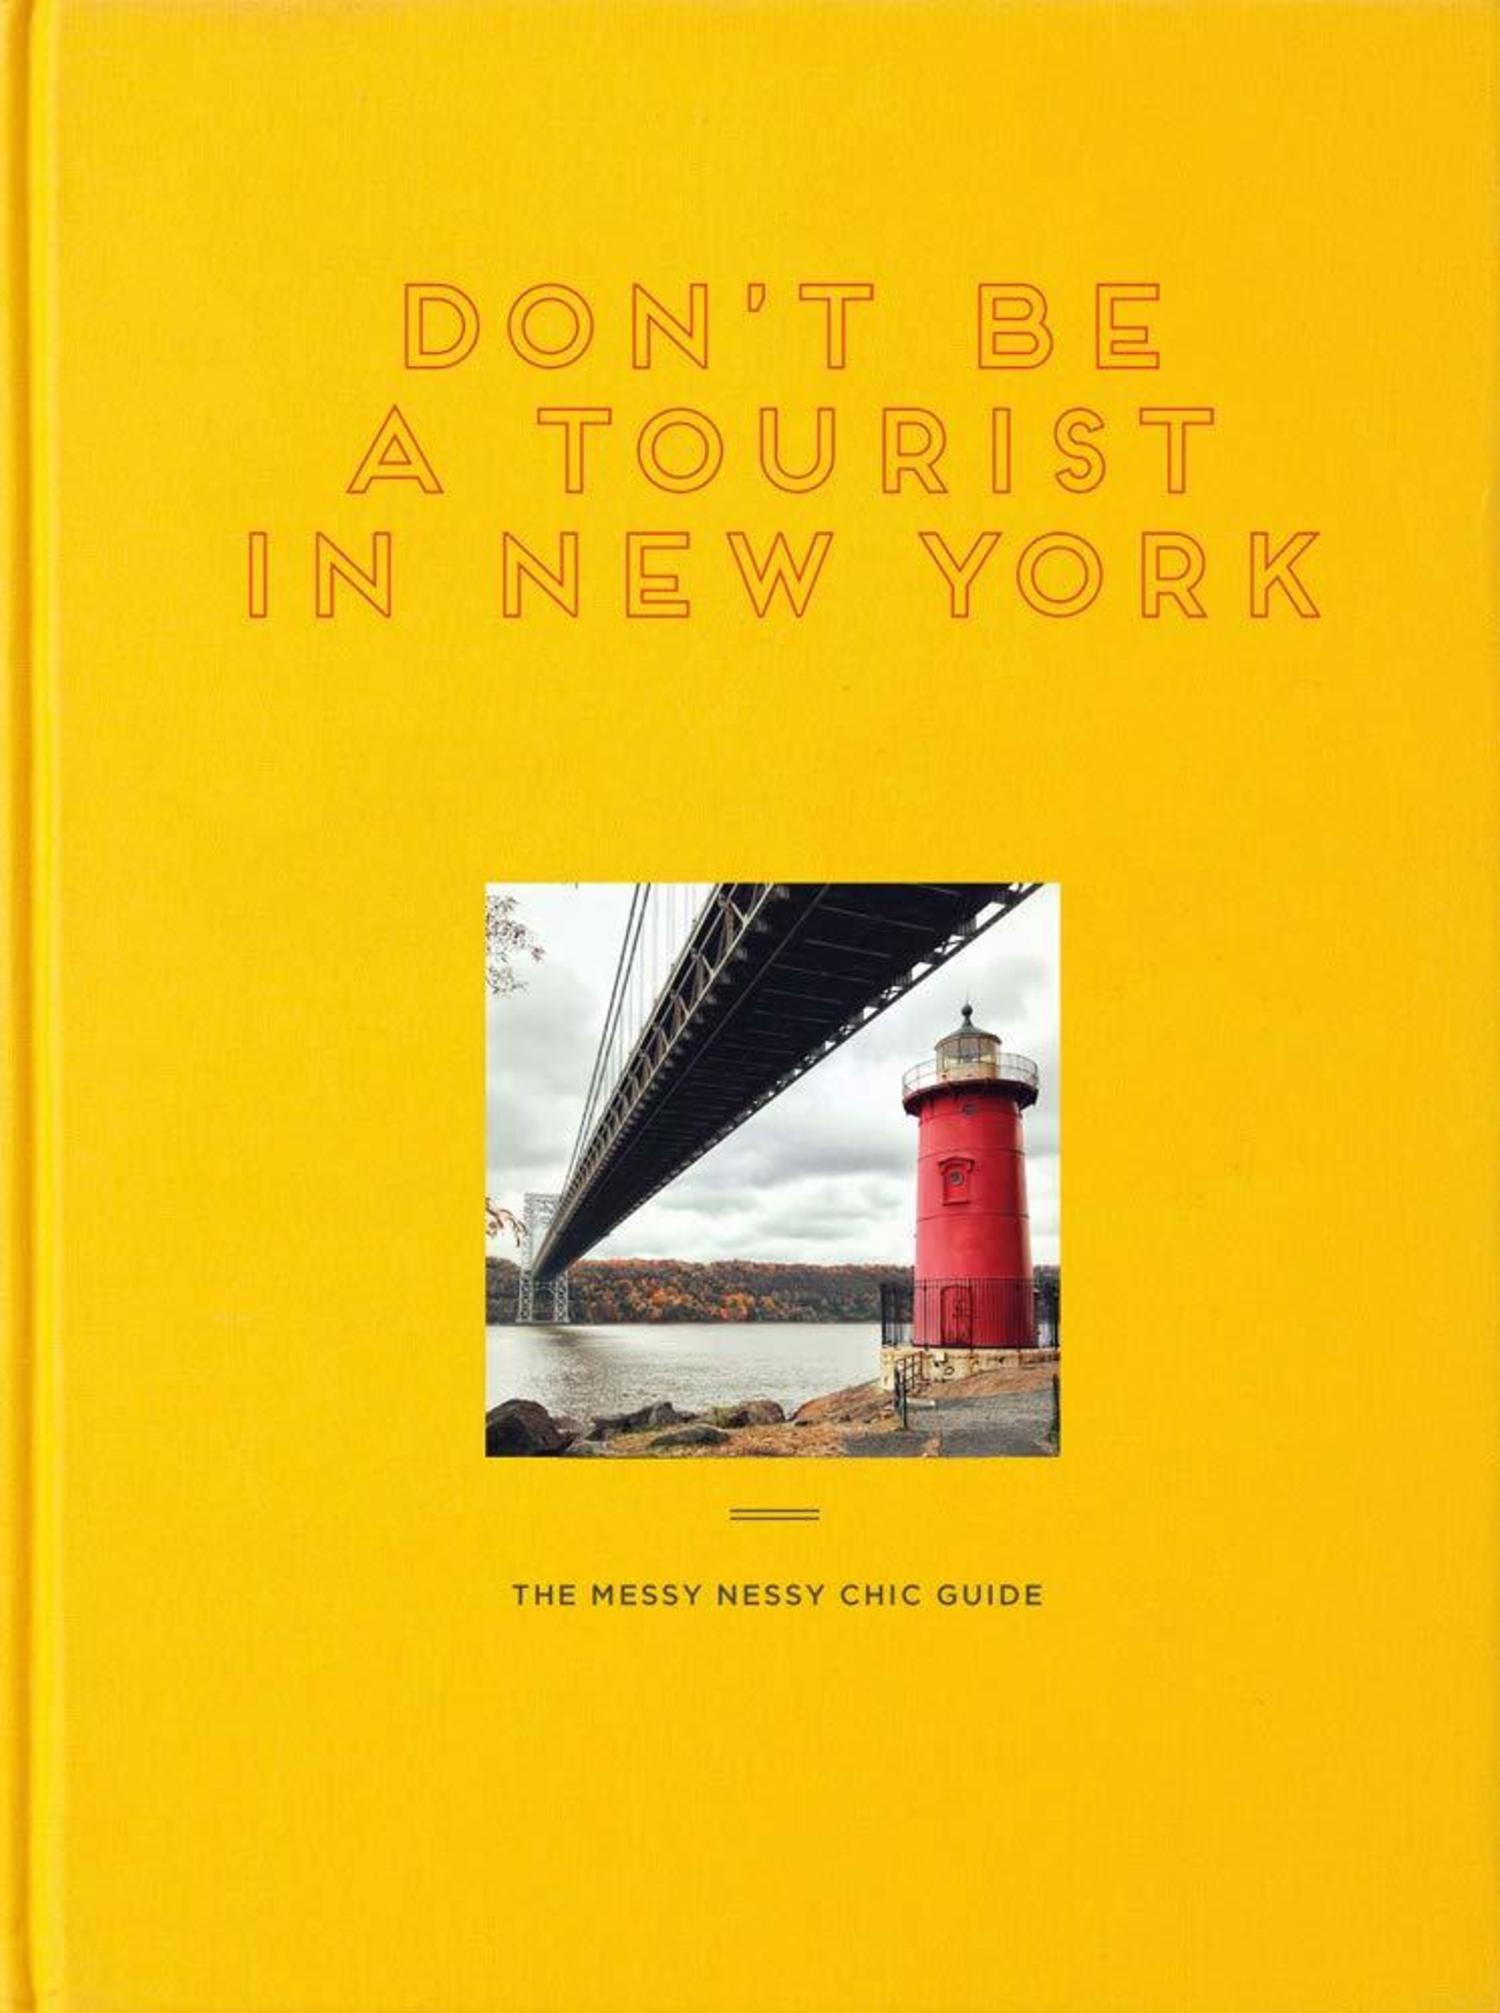 """""""Don't Be a Tourist in New York: The Messy Nessy Chic Guide"""", Vanessa Grall, 2019"""